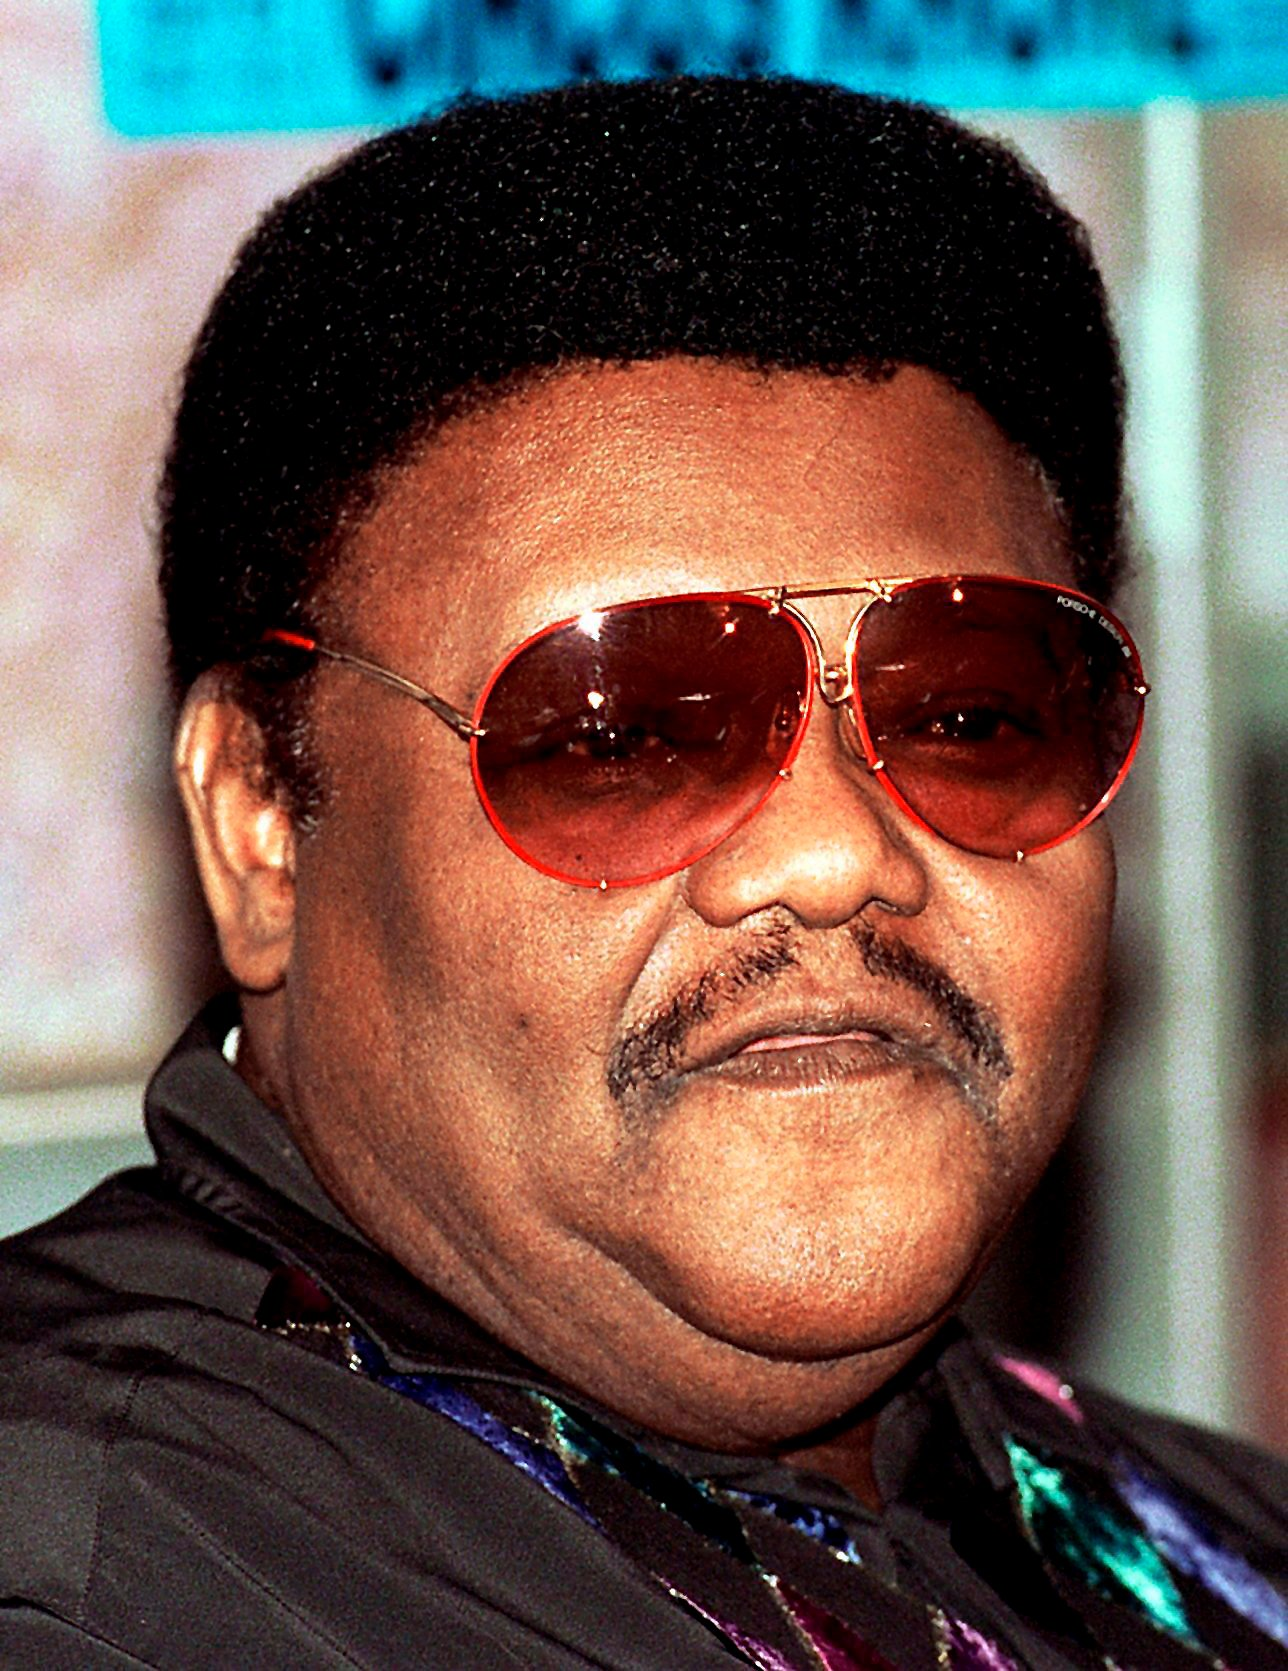 A murit Fats Domino